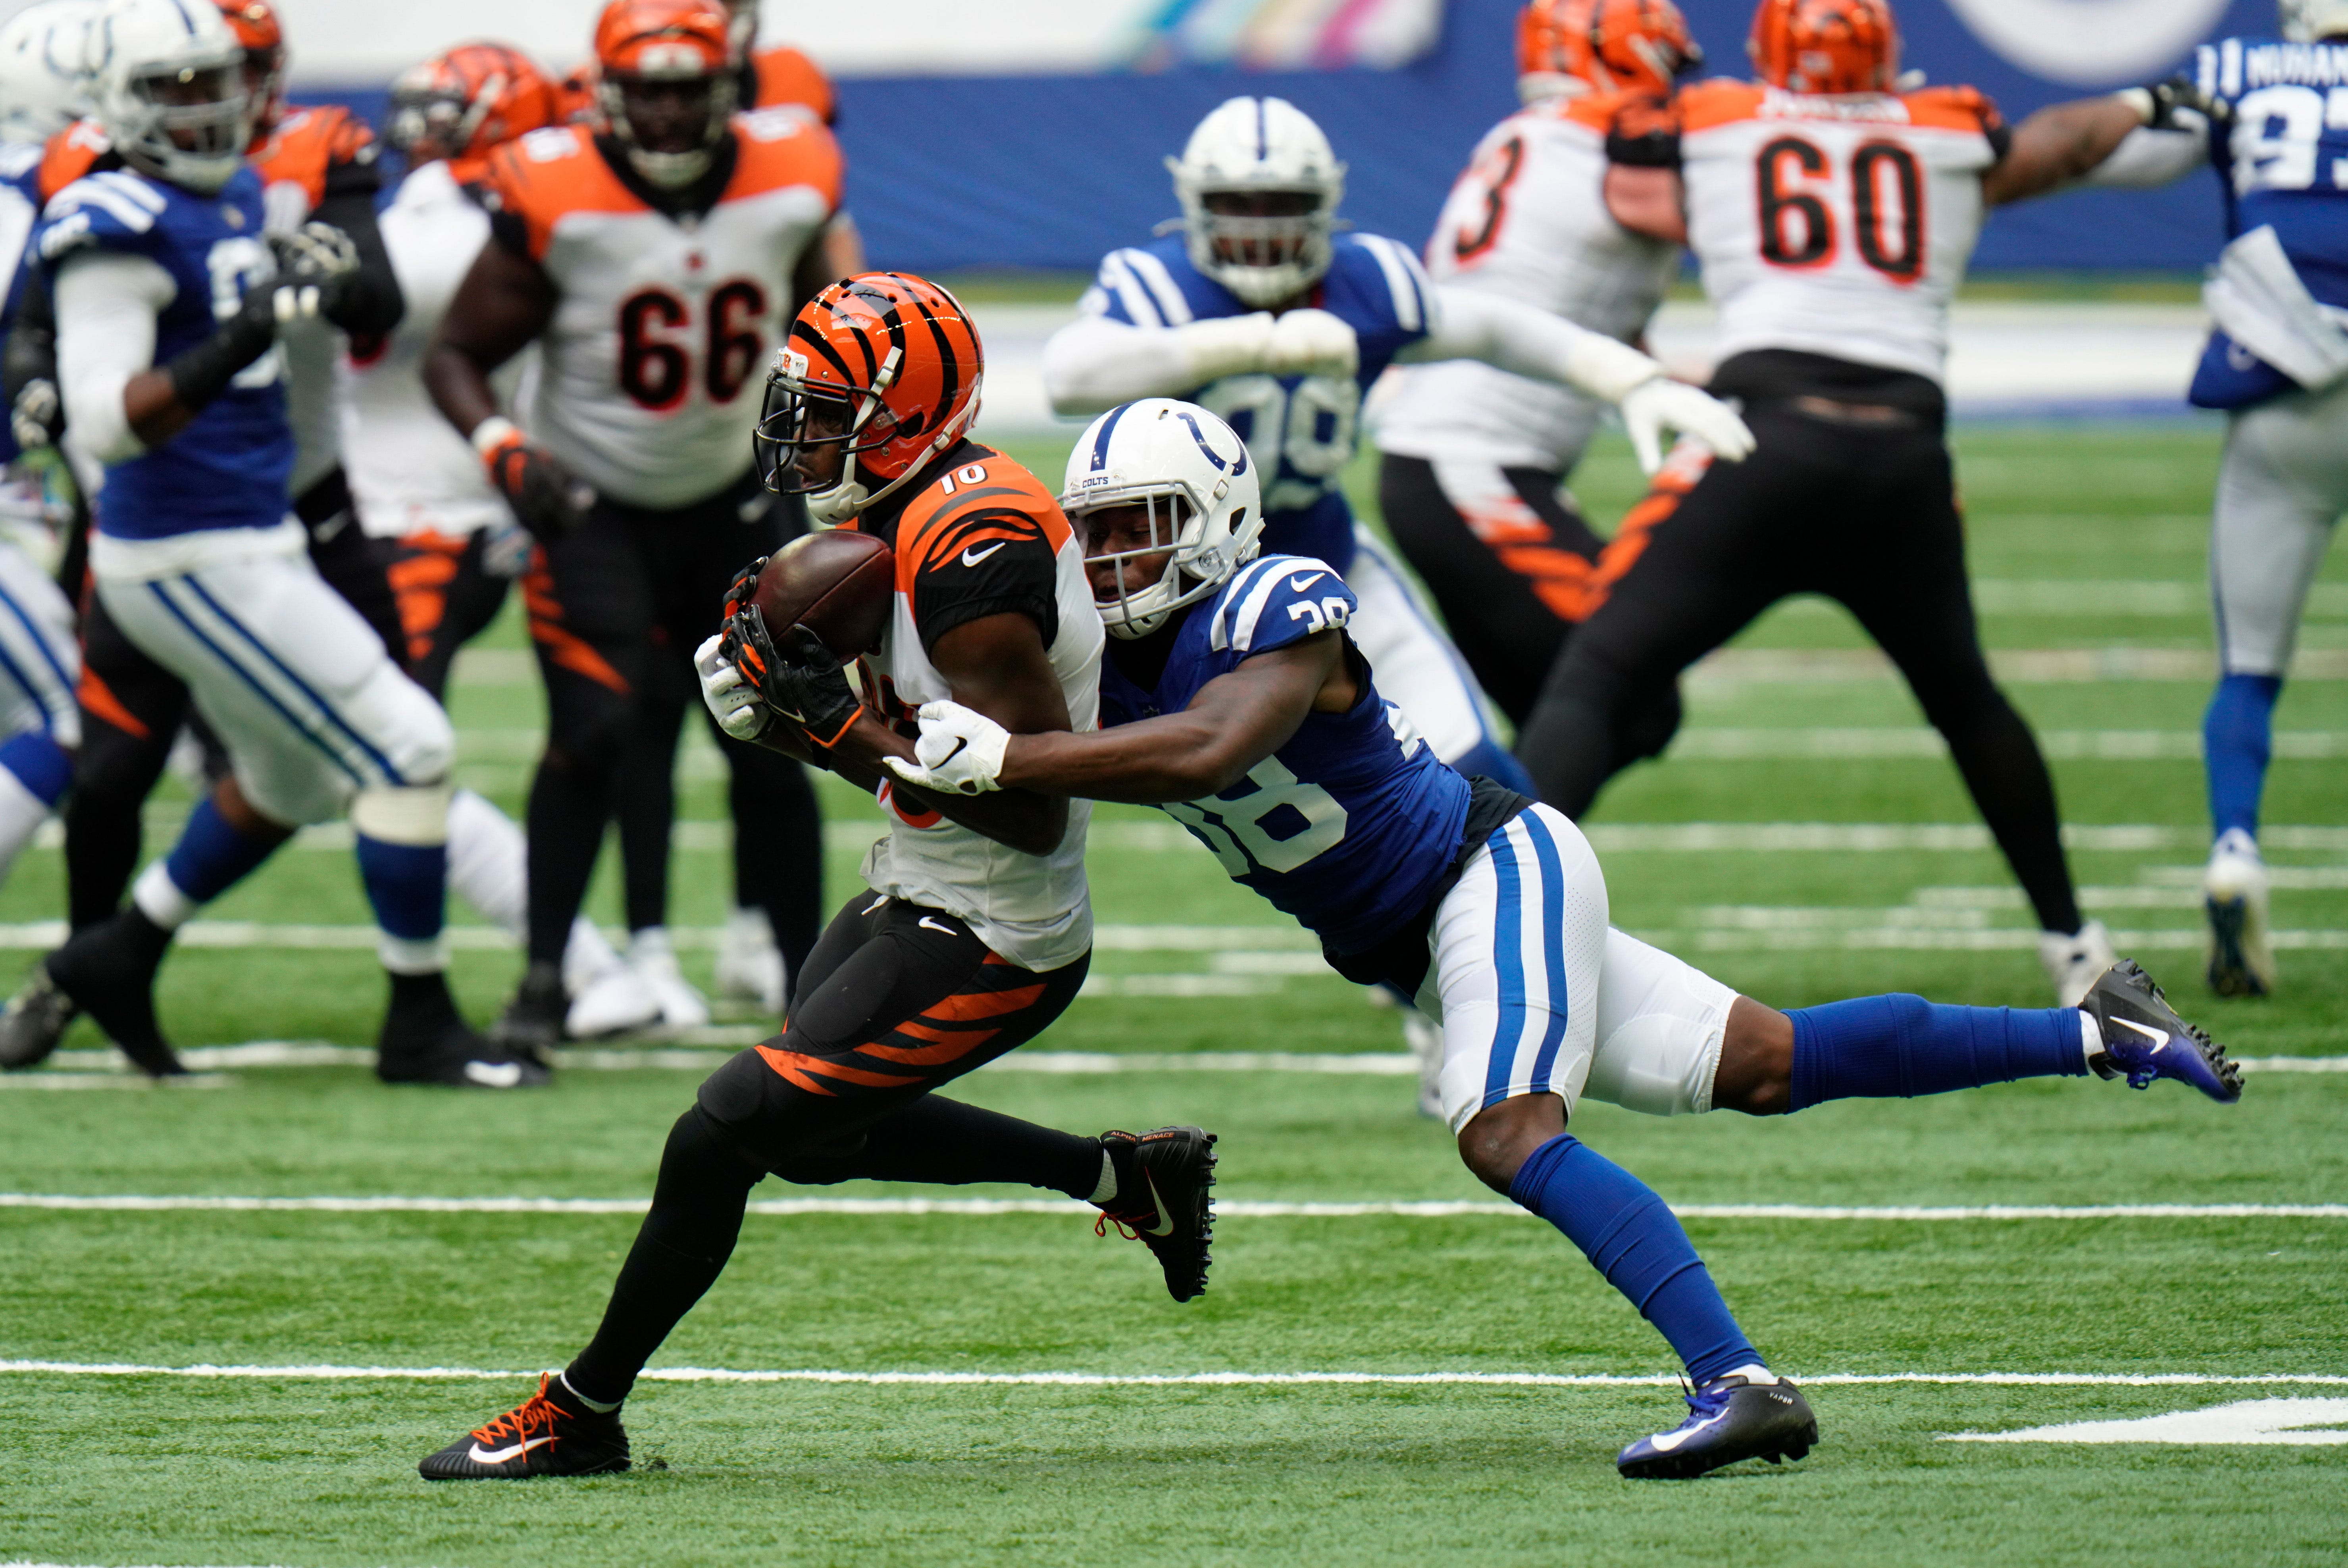 'I feel like the old A.J.': After quiet start, Bengals WR A.J. Green finds his form